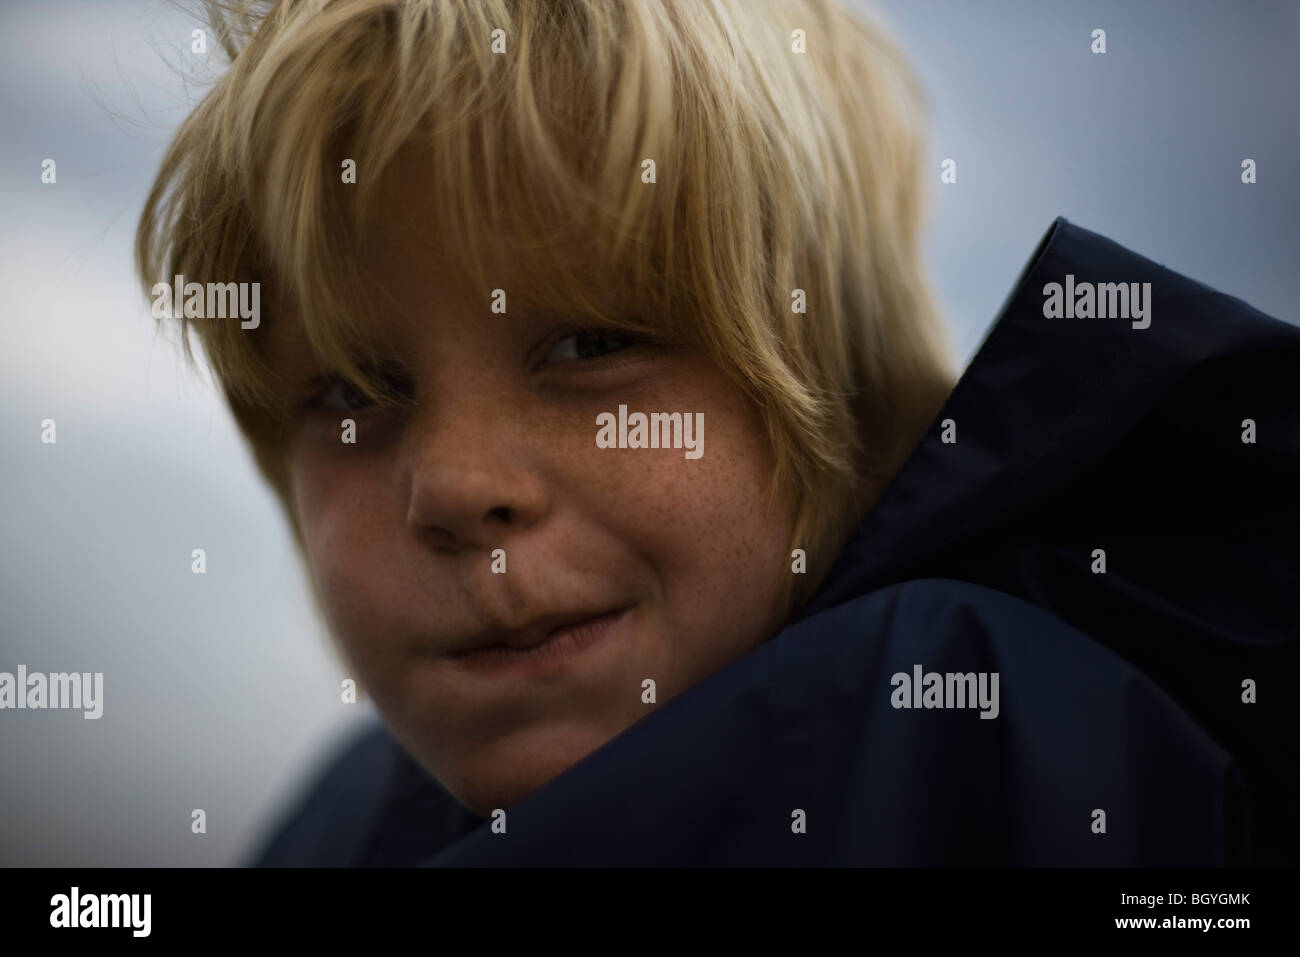 Boy frowning, portrait - Stock Image